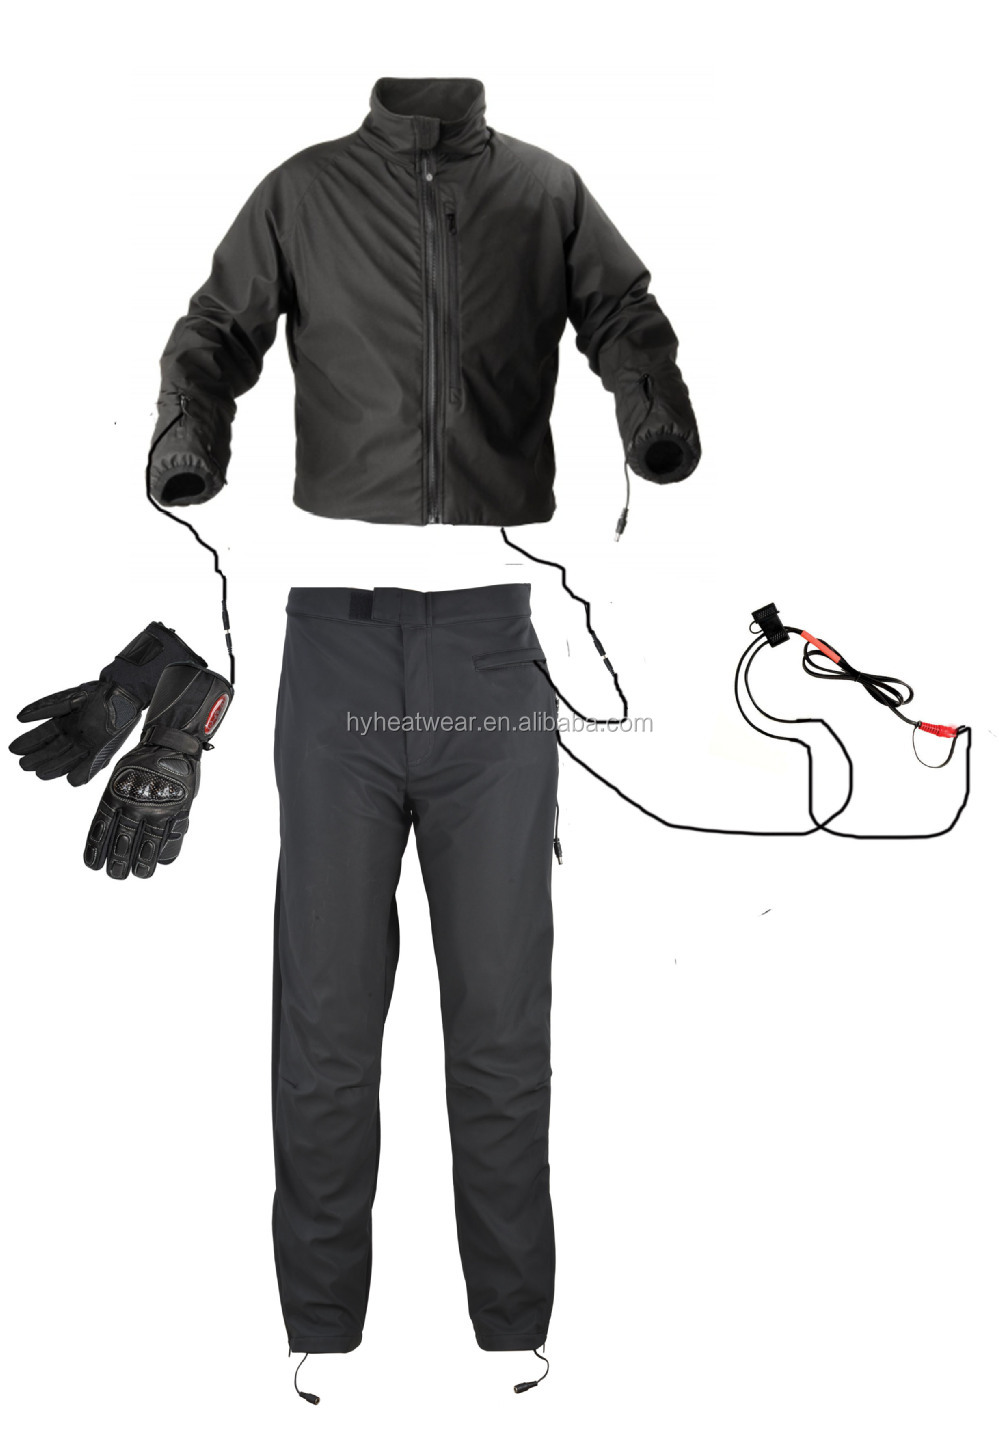 heated motorcycle clothing / motorbike jacket / suit of electrical motorcycle